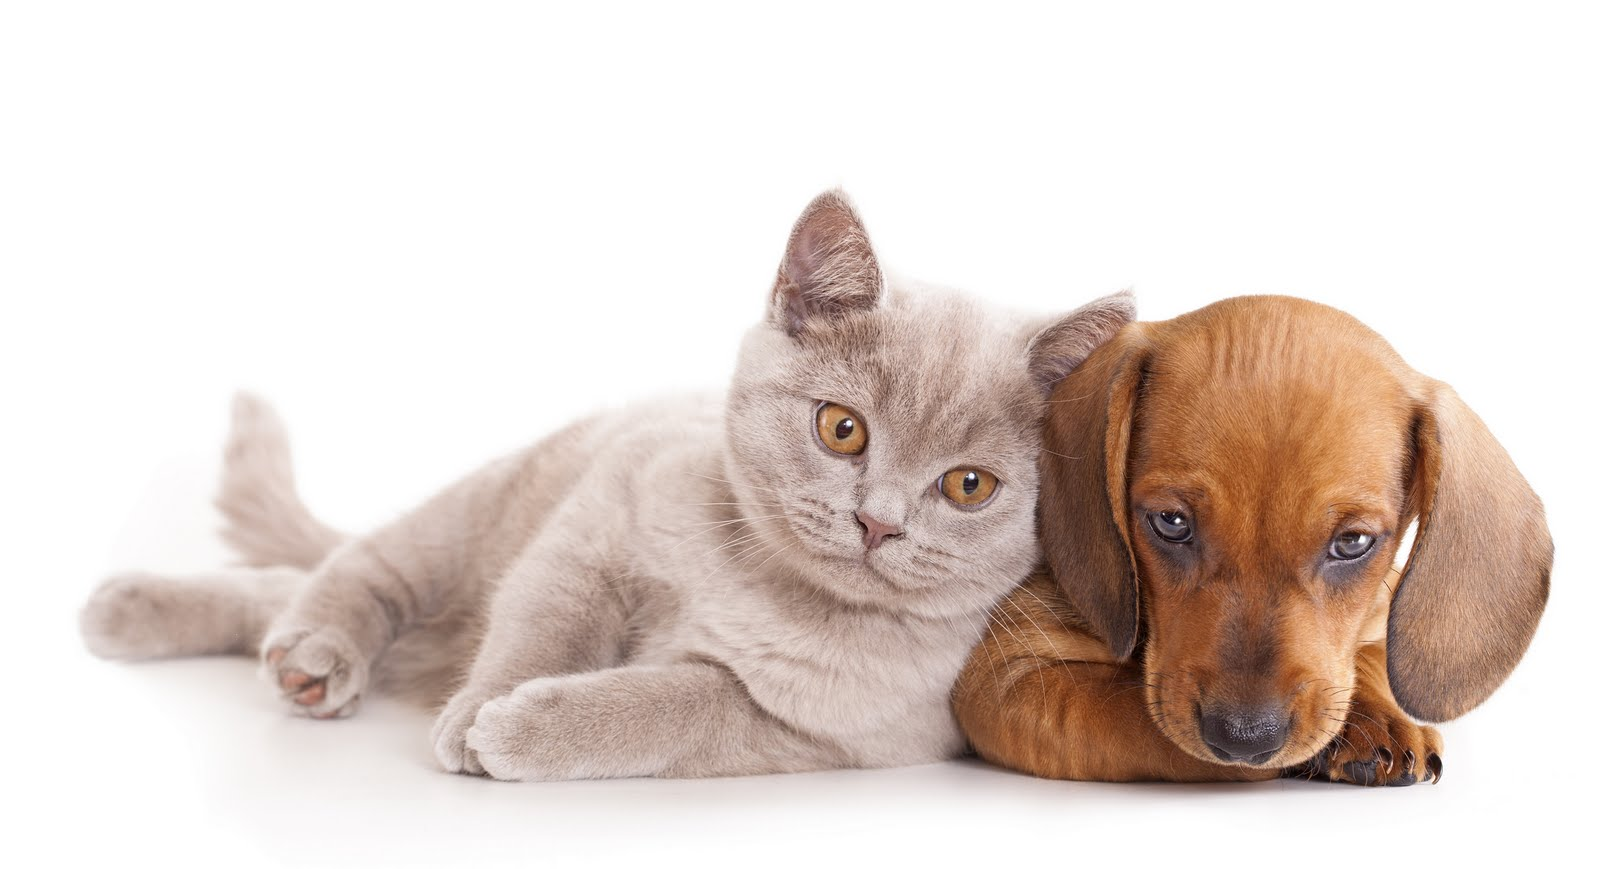 Perros Y Gatos Wallpapers